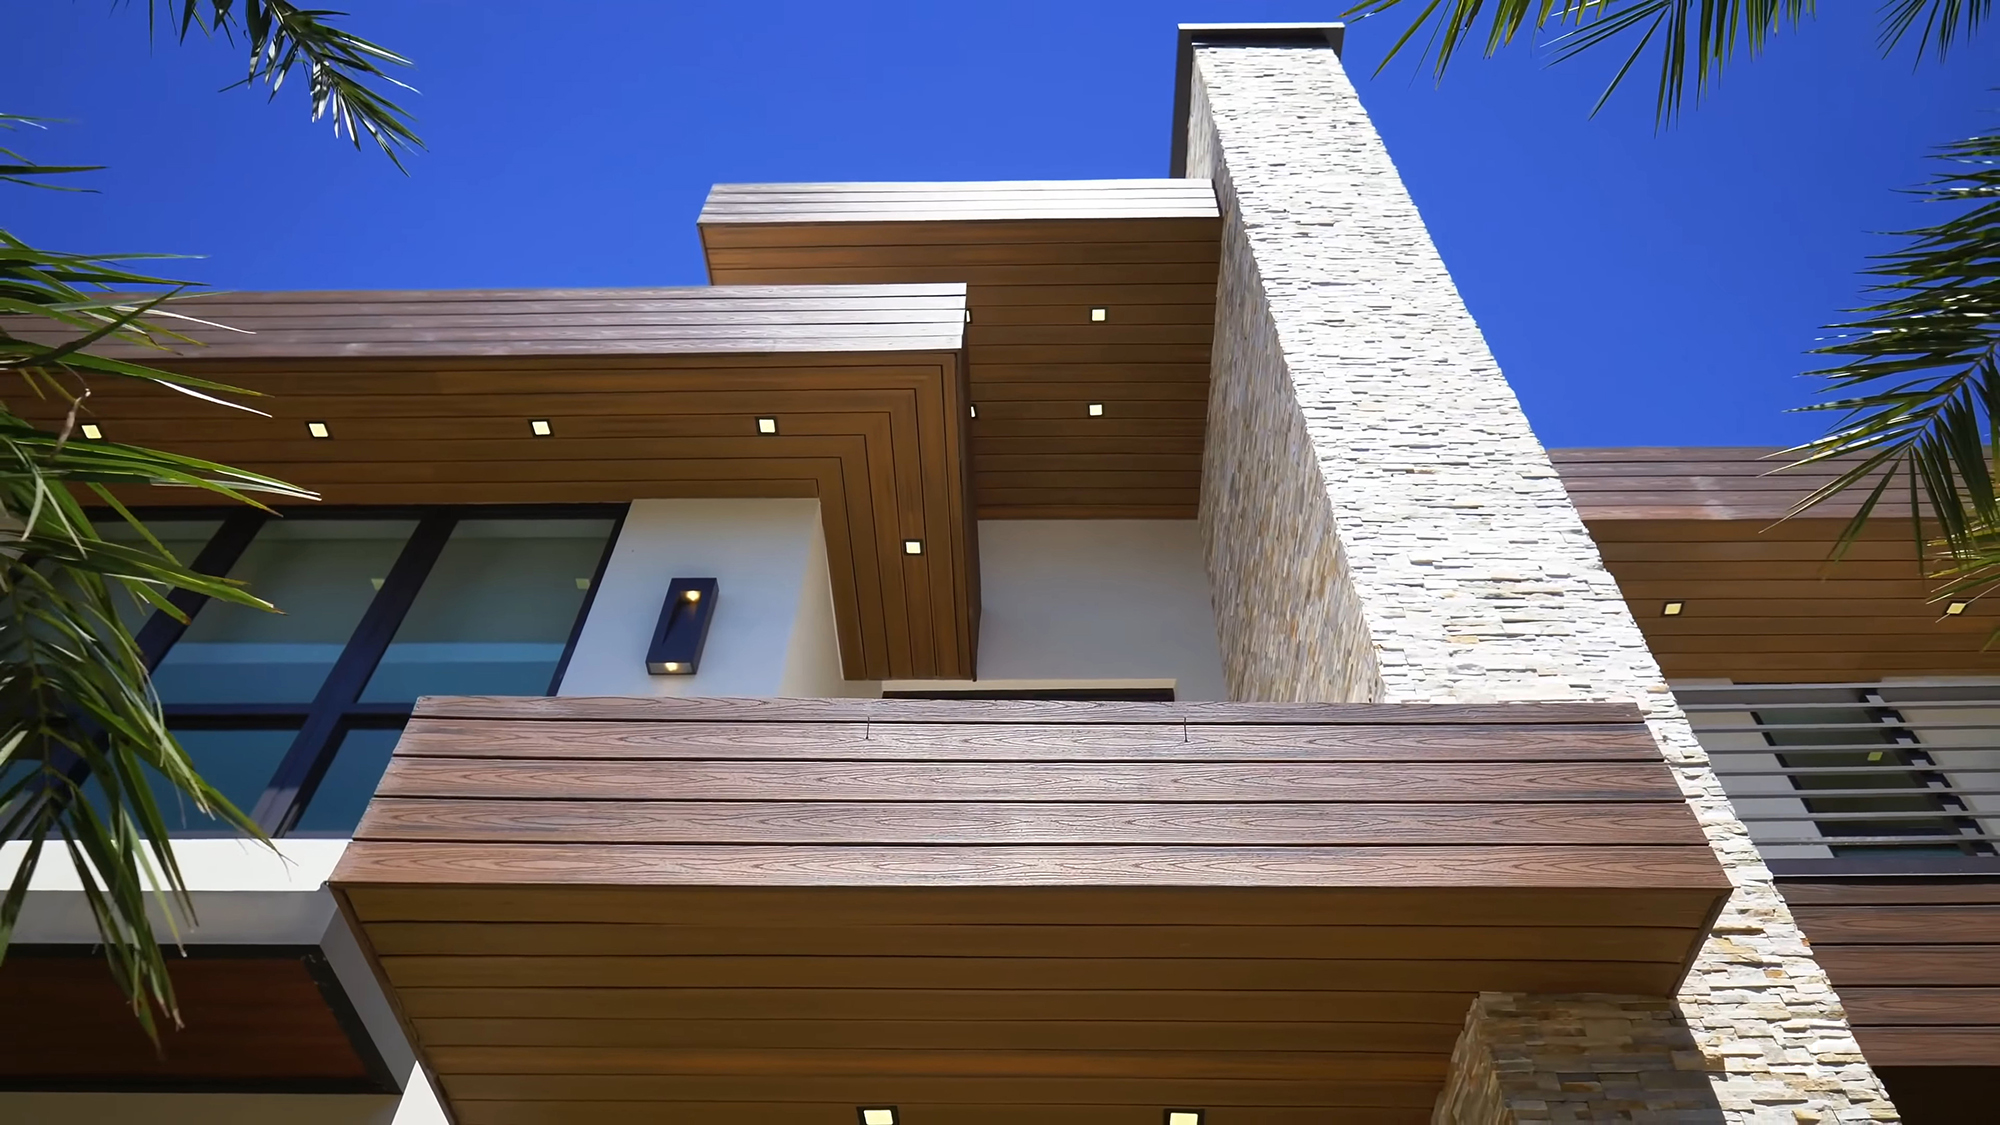 Trex decking used as not only a cladding material but also as a soffit.